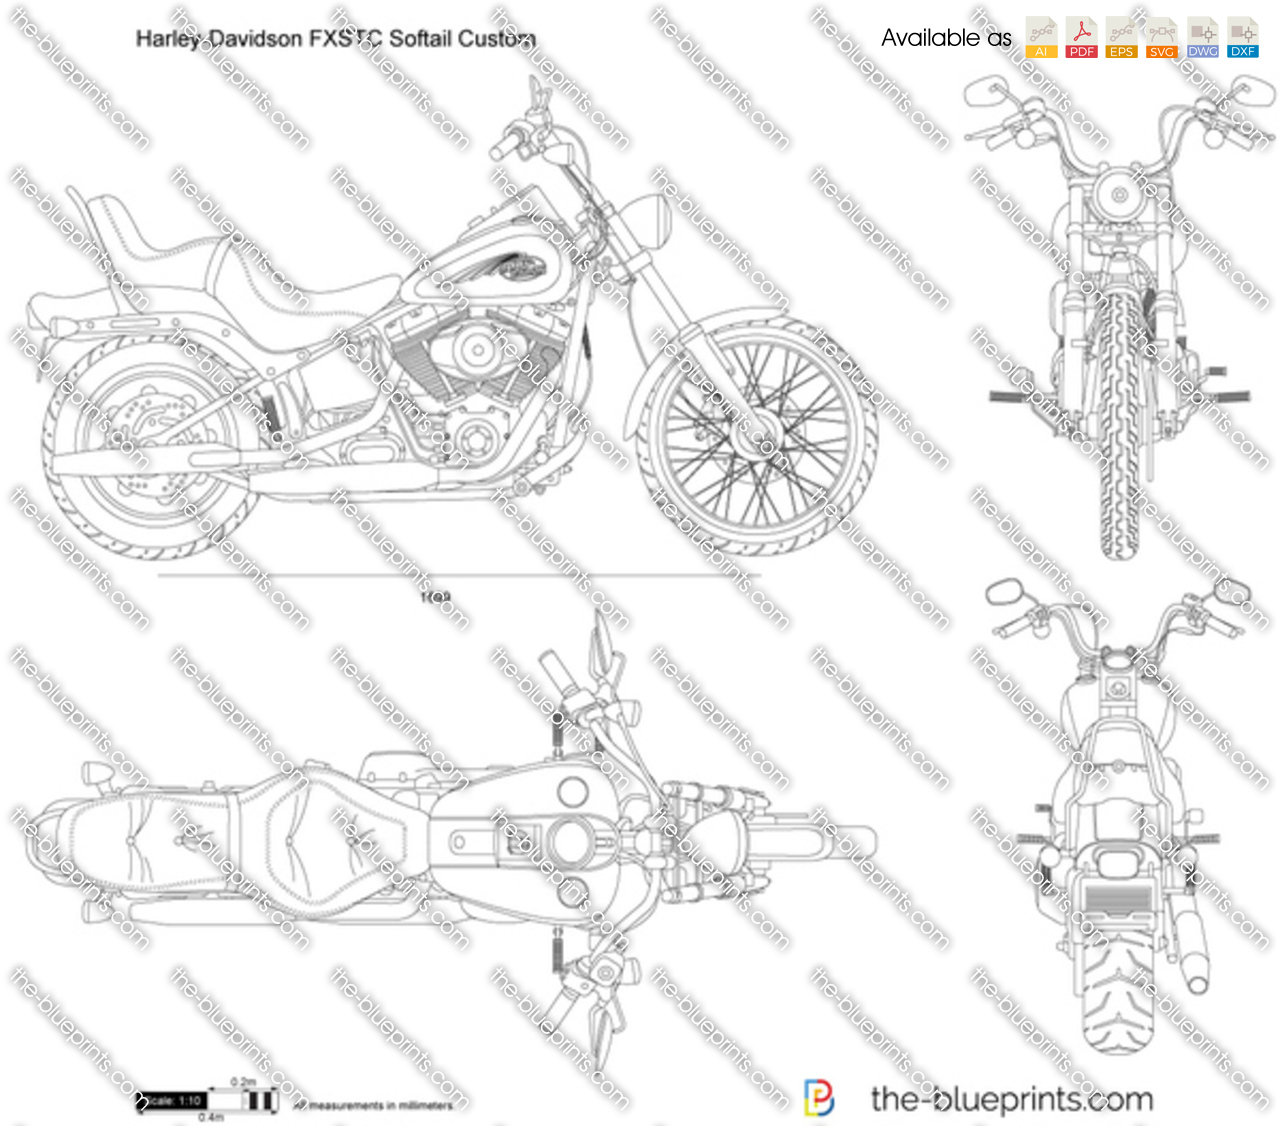 The blueprints vector drawing harley davidson fxstc harley davidson fxstc softail custom malvernweather Choice Image